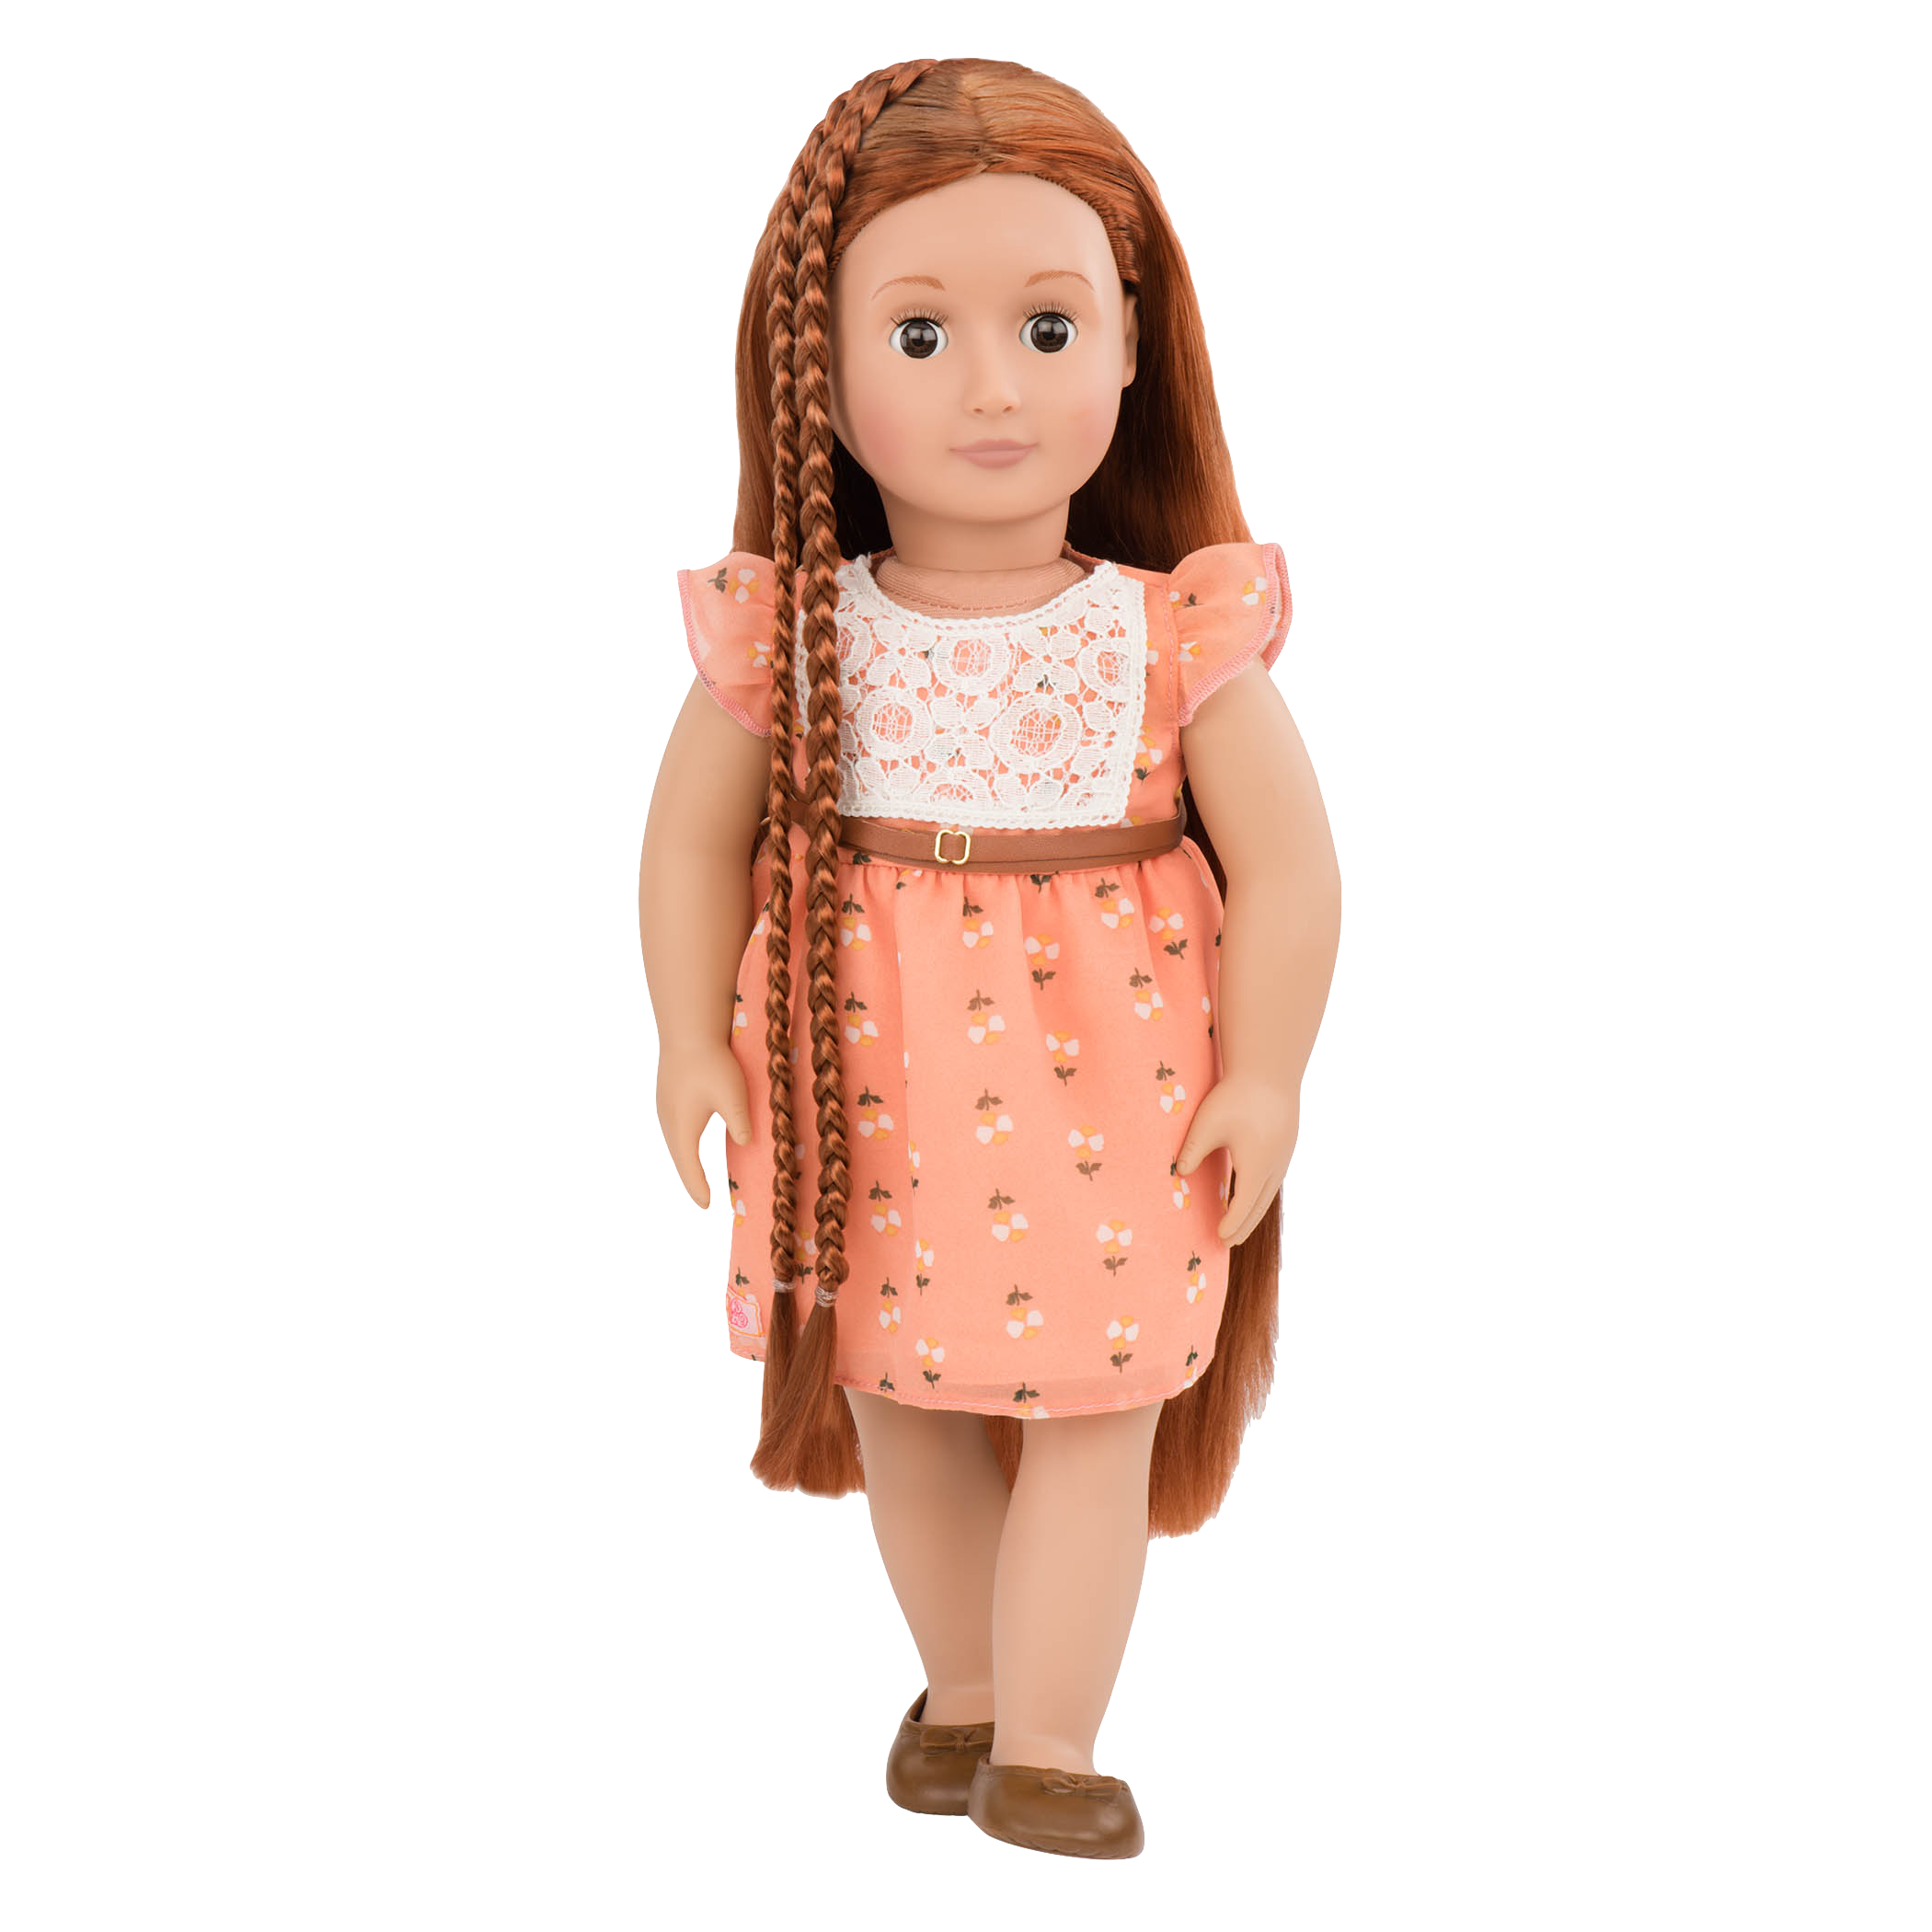 BD31071 Patrice Hairplay Doll standing up